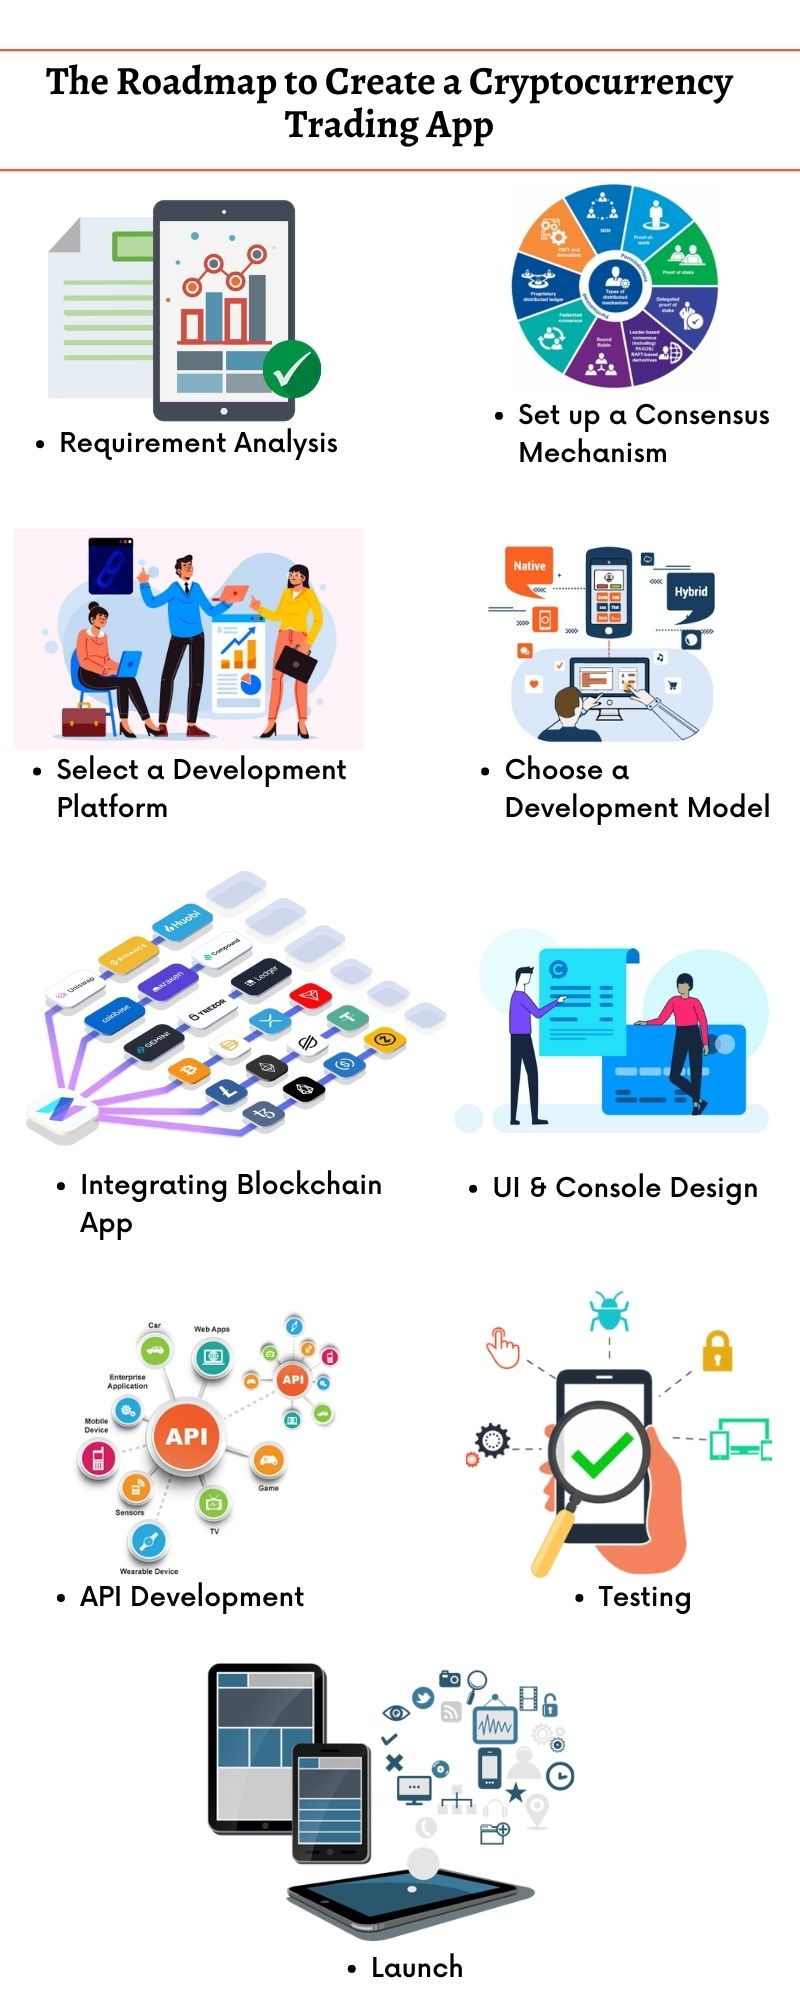 The Roadmap to Create a Cryptocurrency Trading-App